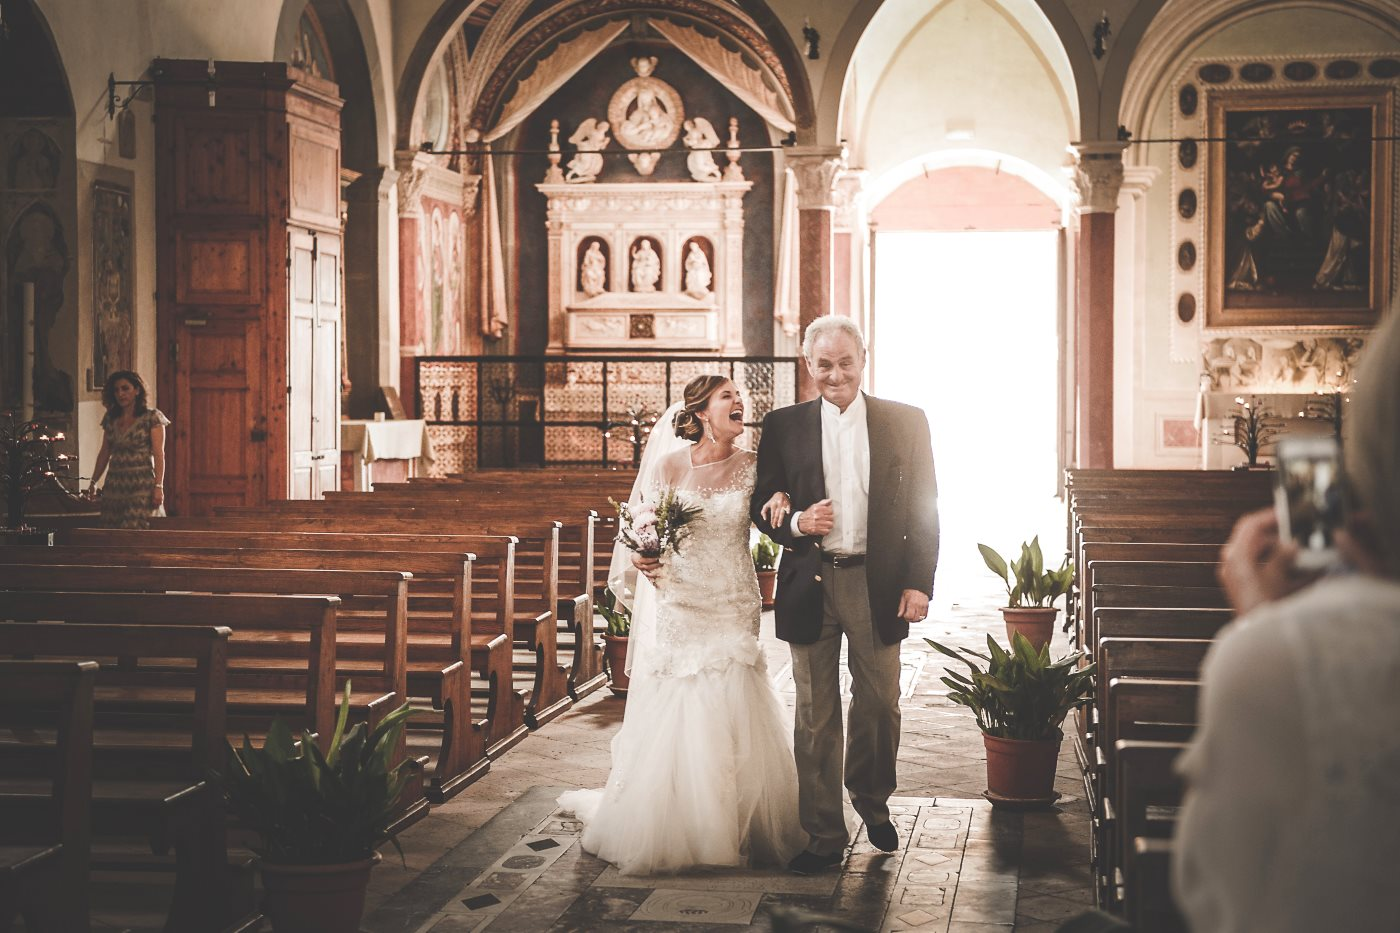 photographer_weddings_san_gimignano_03.jpg